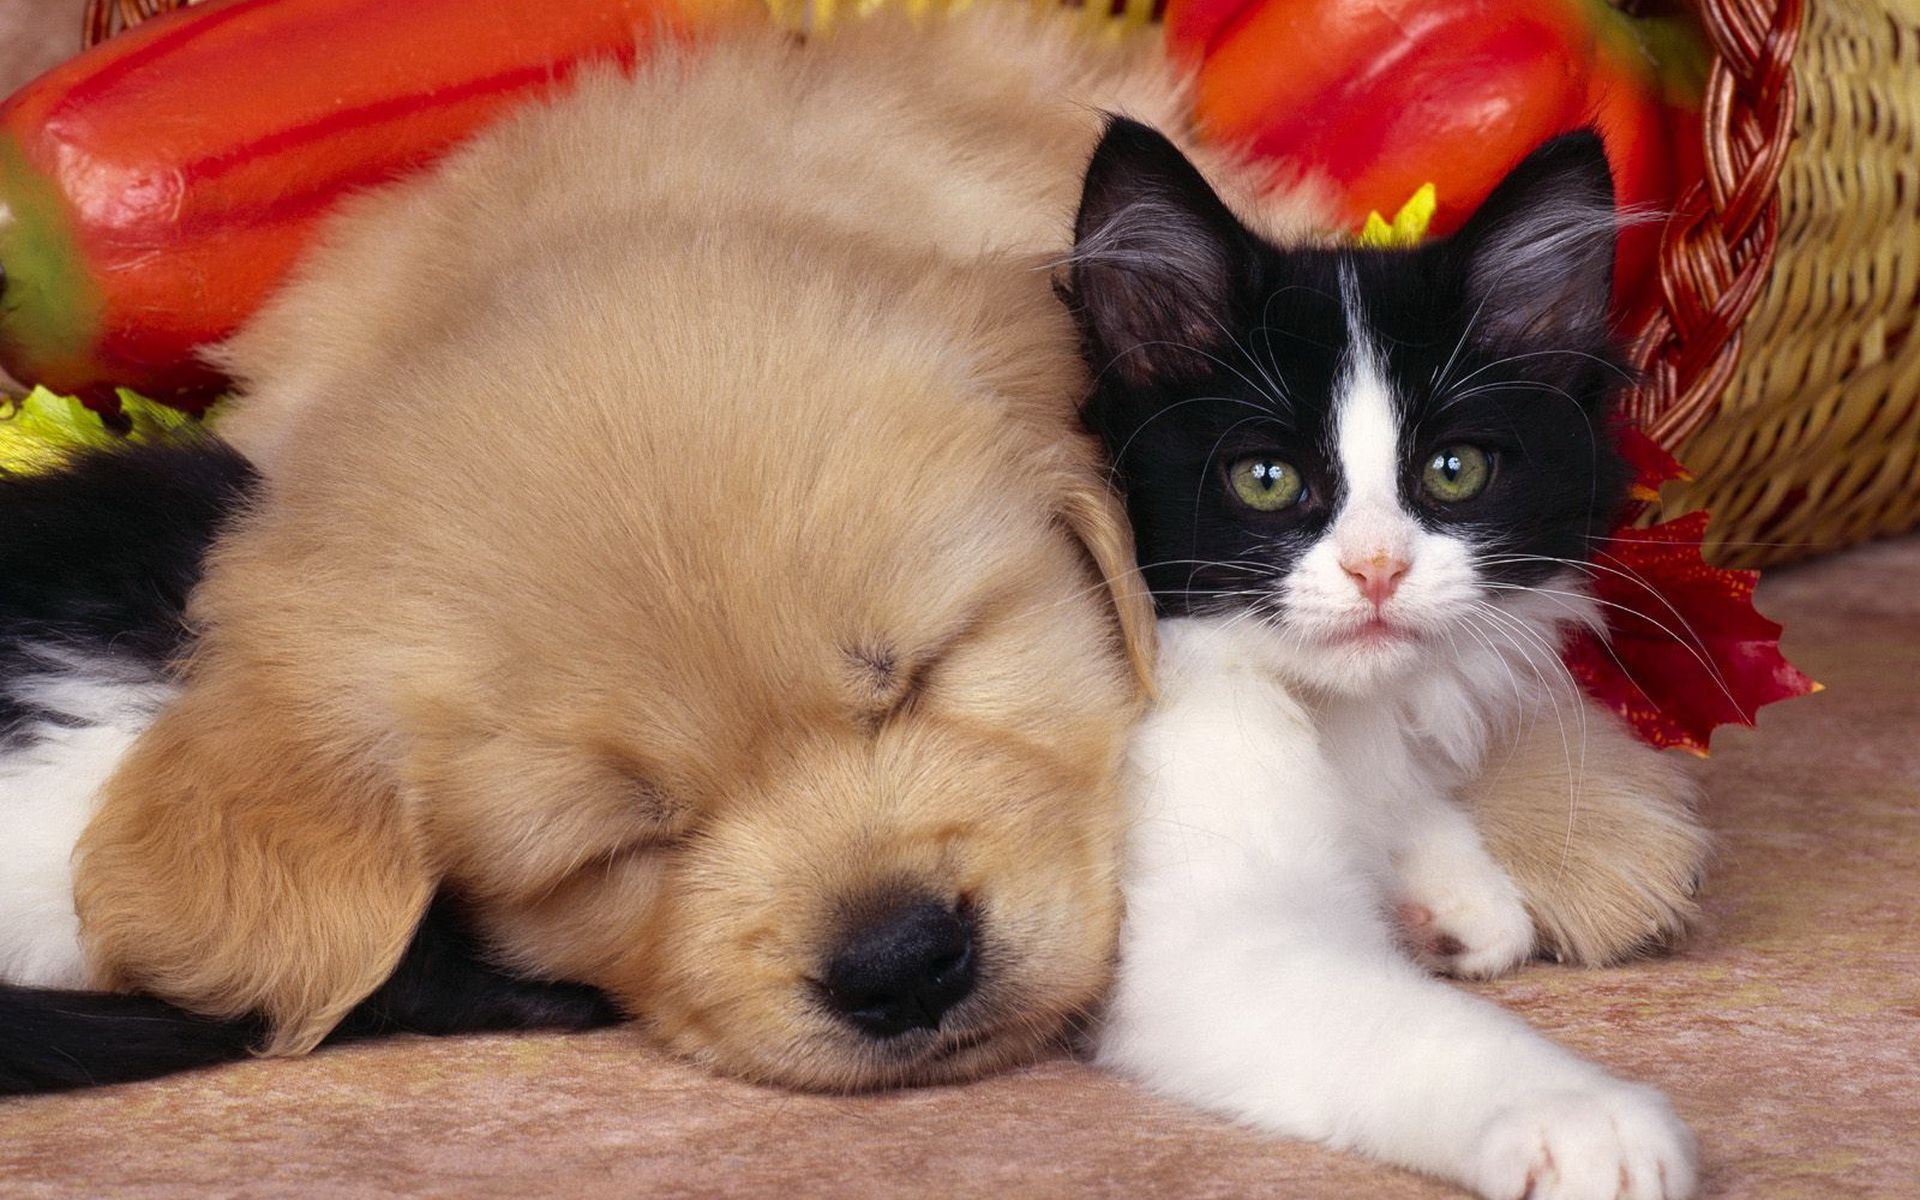 505033 Title Animal Cat Dog Cat Dog Cute Wallpaper Cute Dogs With Cats 1920x1200 Download Hd Wallpaper Wallpapertip